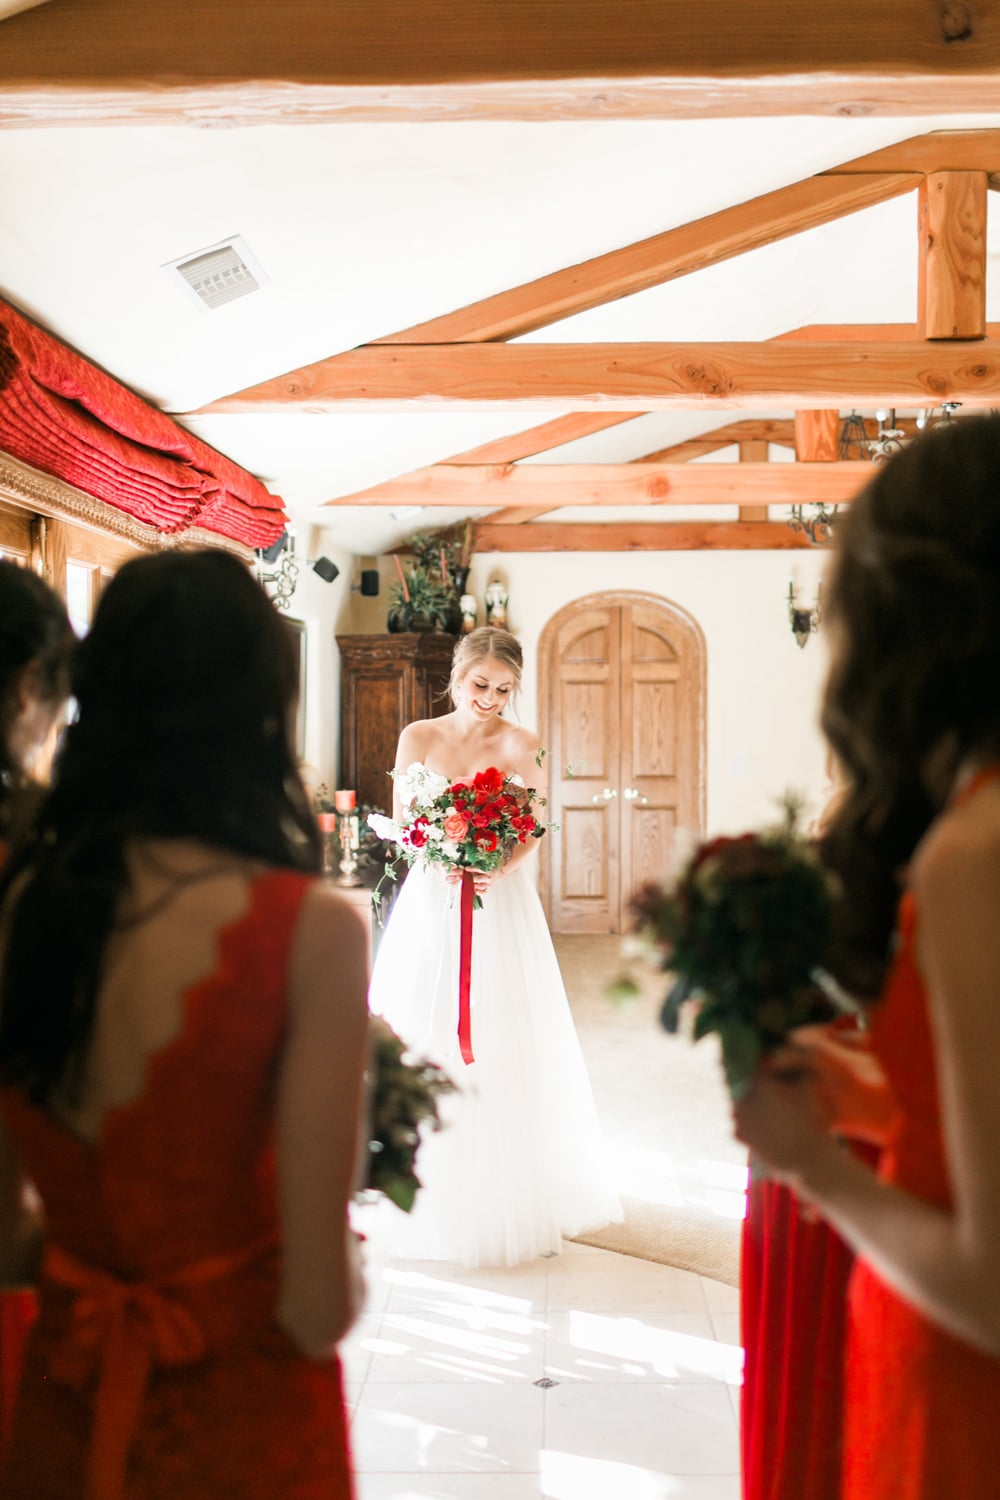 Natalie_Schutt_Photography_Winter_Wedding_San_Luis_Obispo-43.jpg